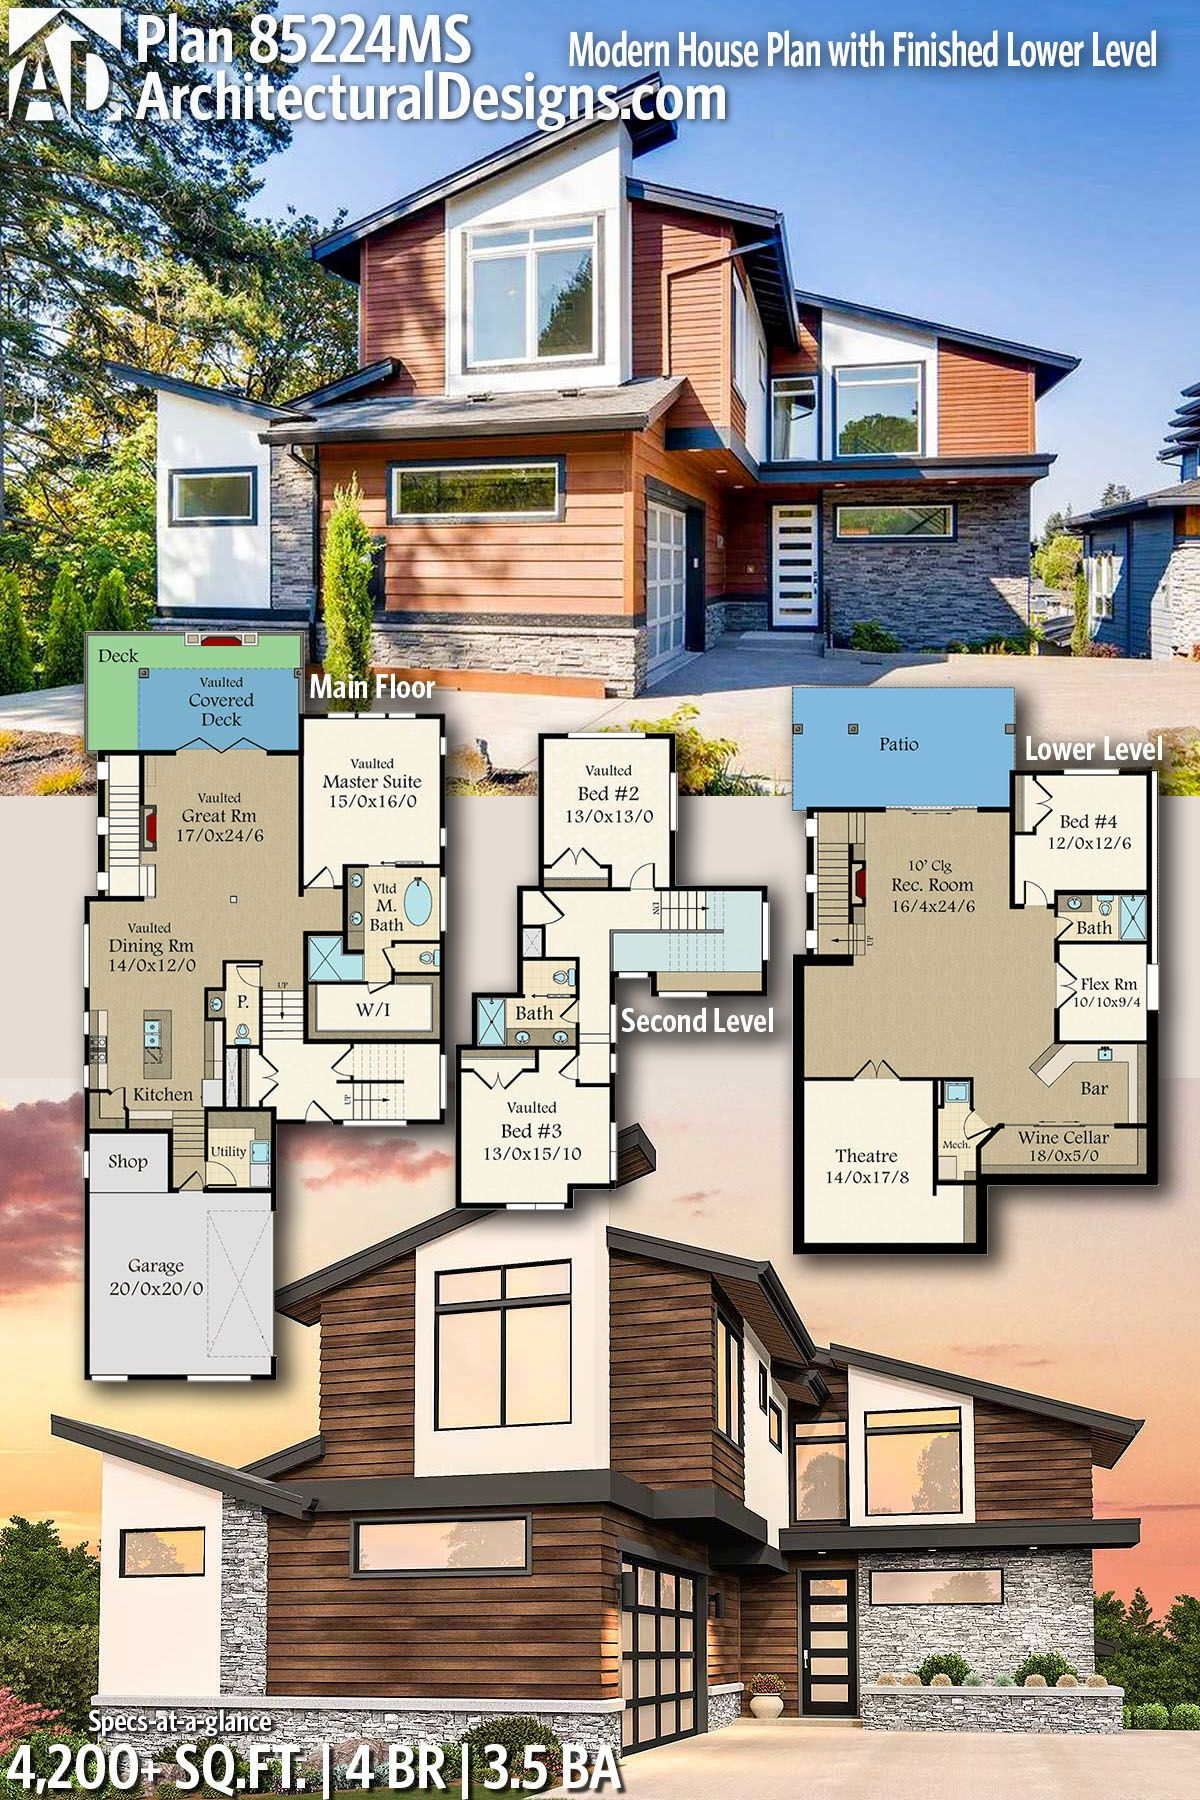 Architectural designs home plan ms gives you bedrooms baths and sq ft ready when are where do want to build also modern house with finished lower level rh pinterest